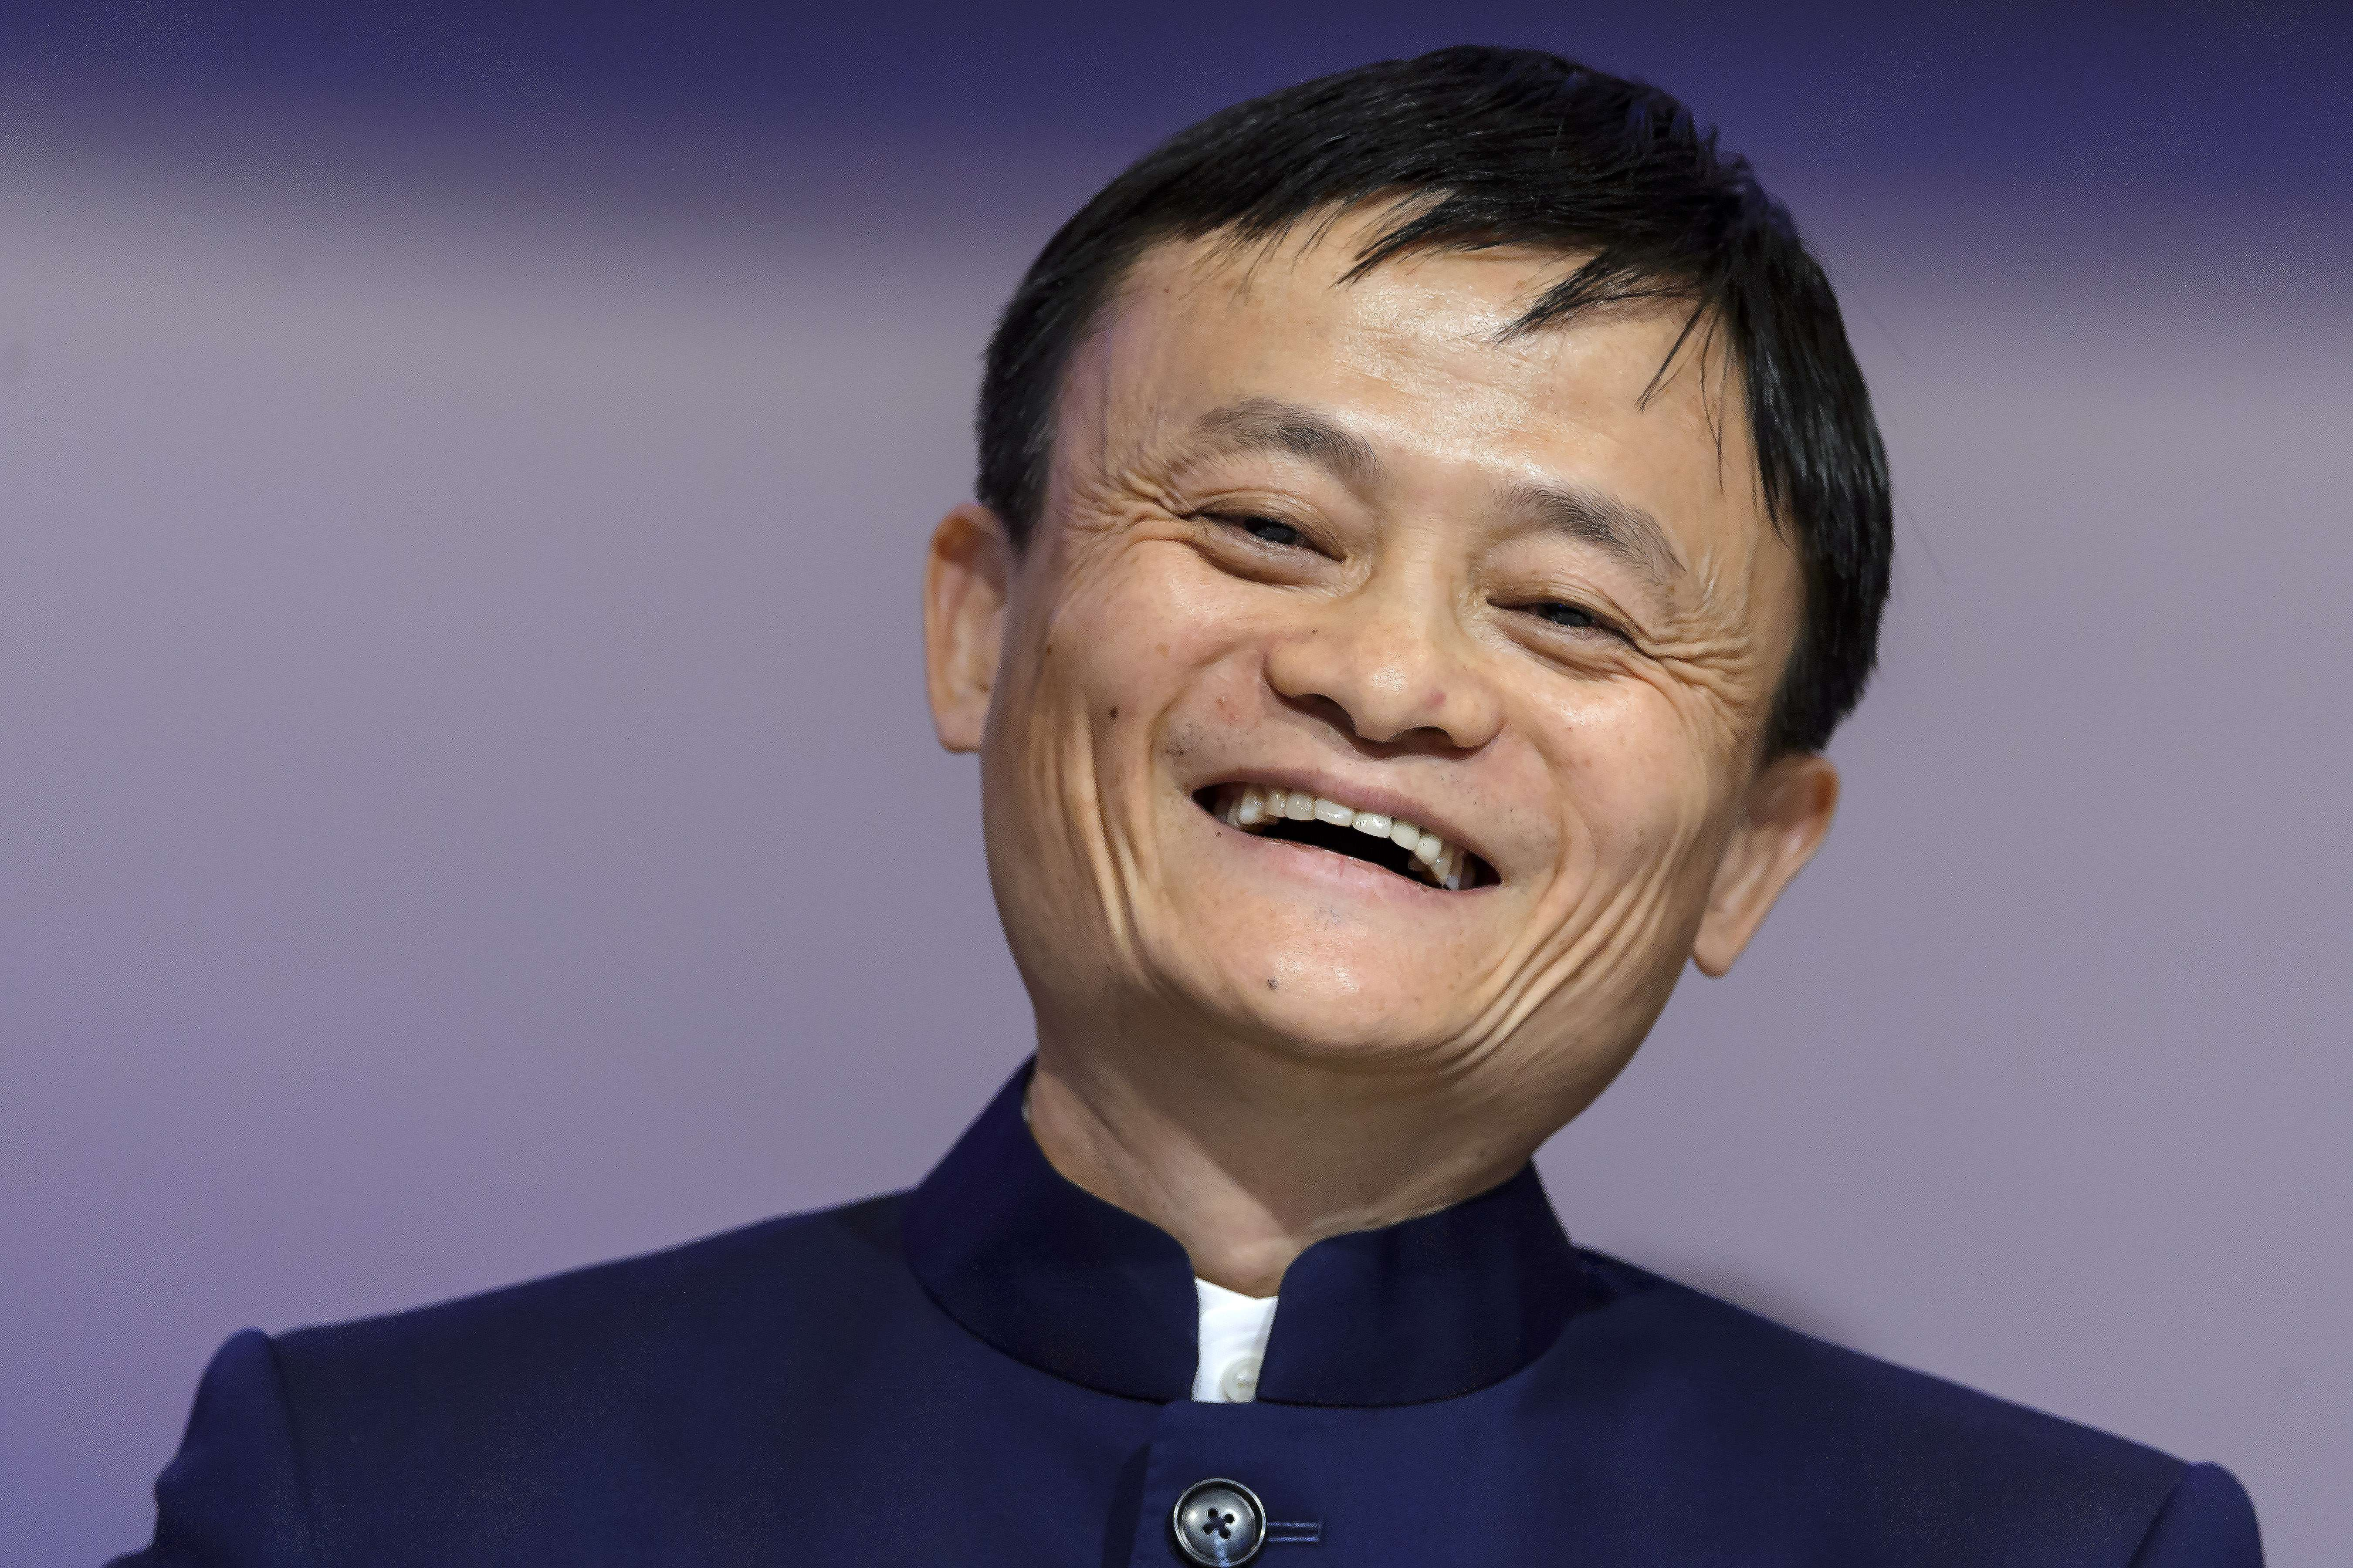 Alibaba Ceo Jack Ma Says Slower Growth Is Good For China Fortune Alibaba did not immediately respond to fn's request for comment about ma's whereabouts. https fortune com 2015 01 23 alibaba ceo jack ma says slower growth is good for china